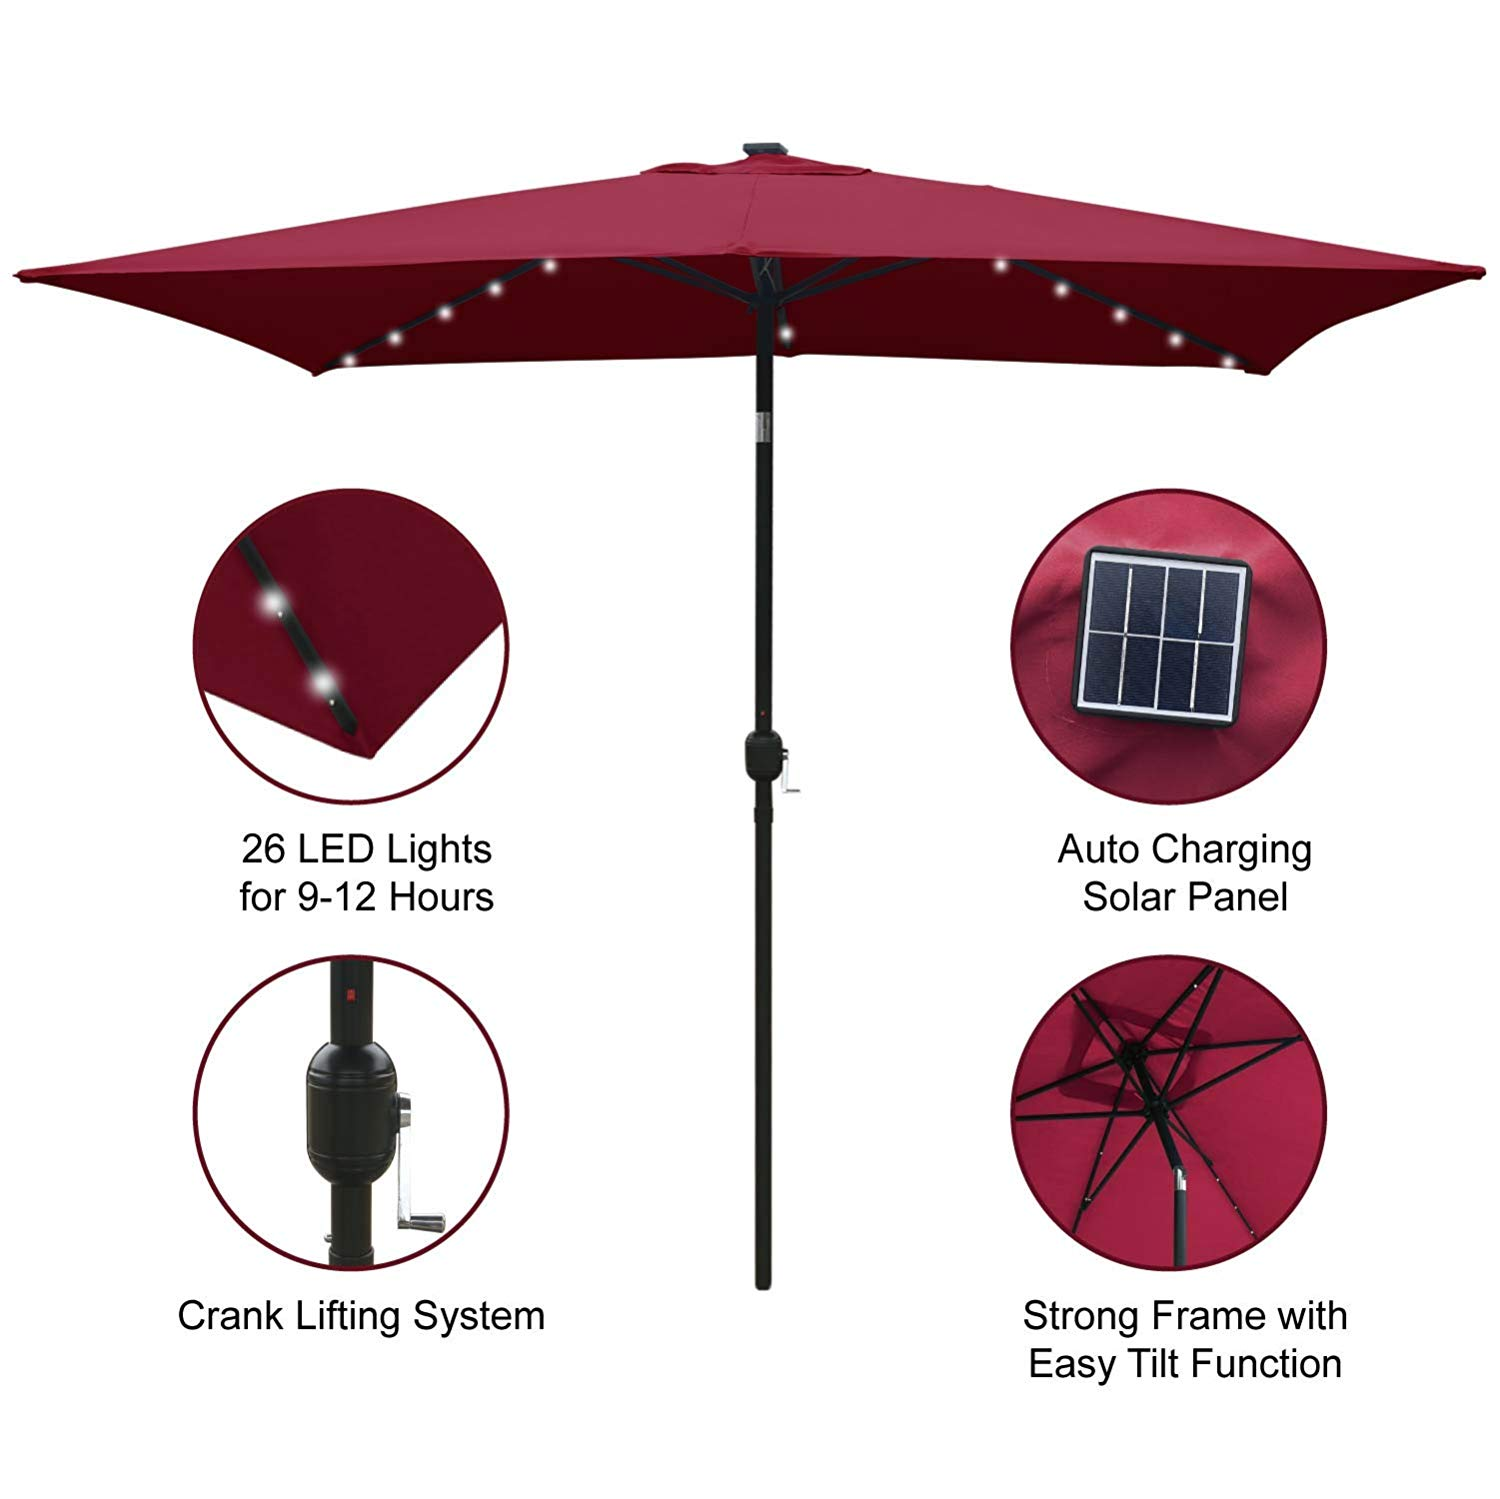 ABCCANOPY Rectangular Outdoor Solar Powered Patio Umbrella with 26 LED Lights, 6.6 by 9.8 Ft